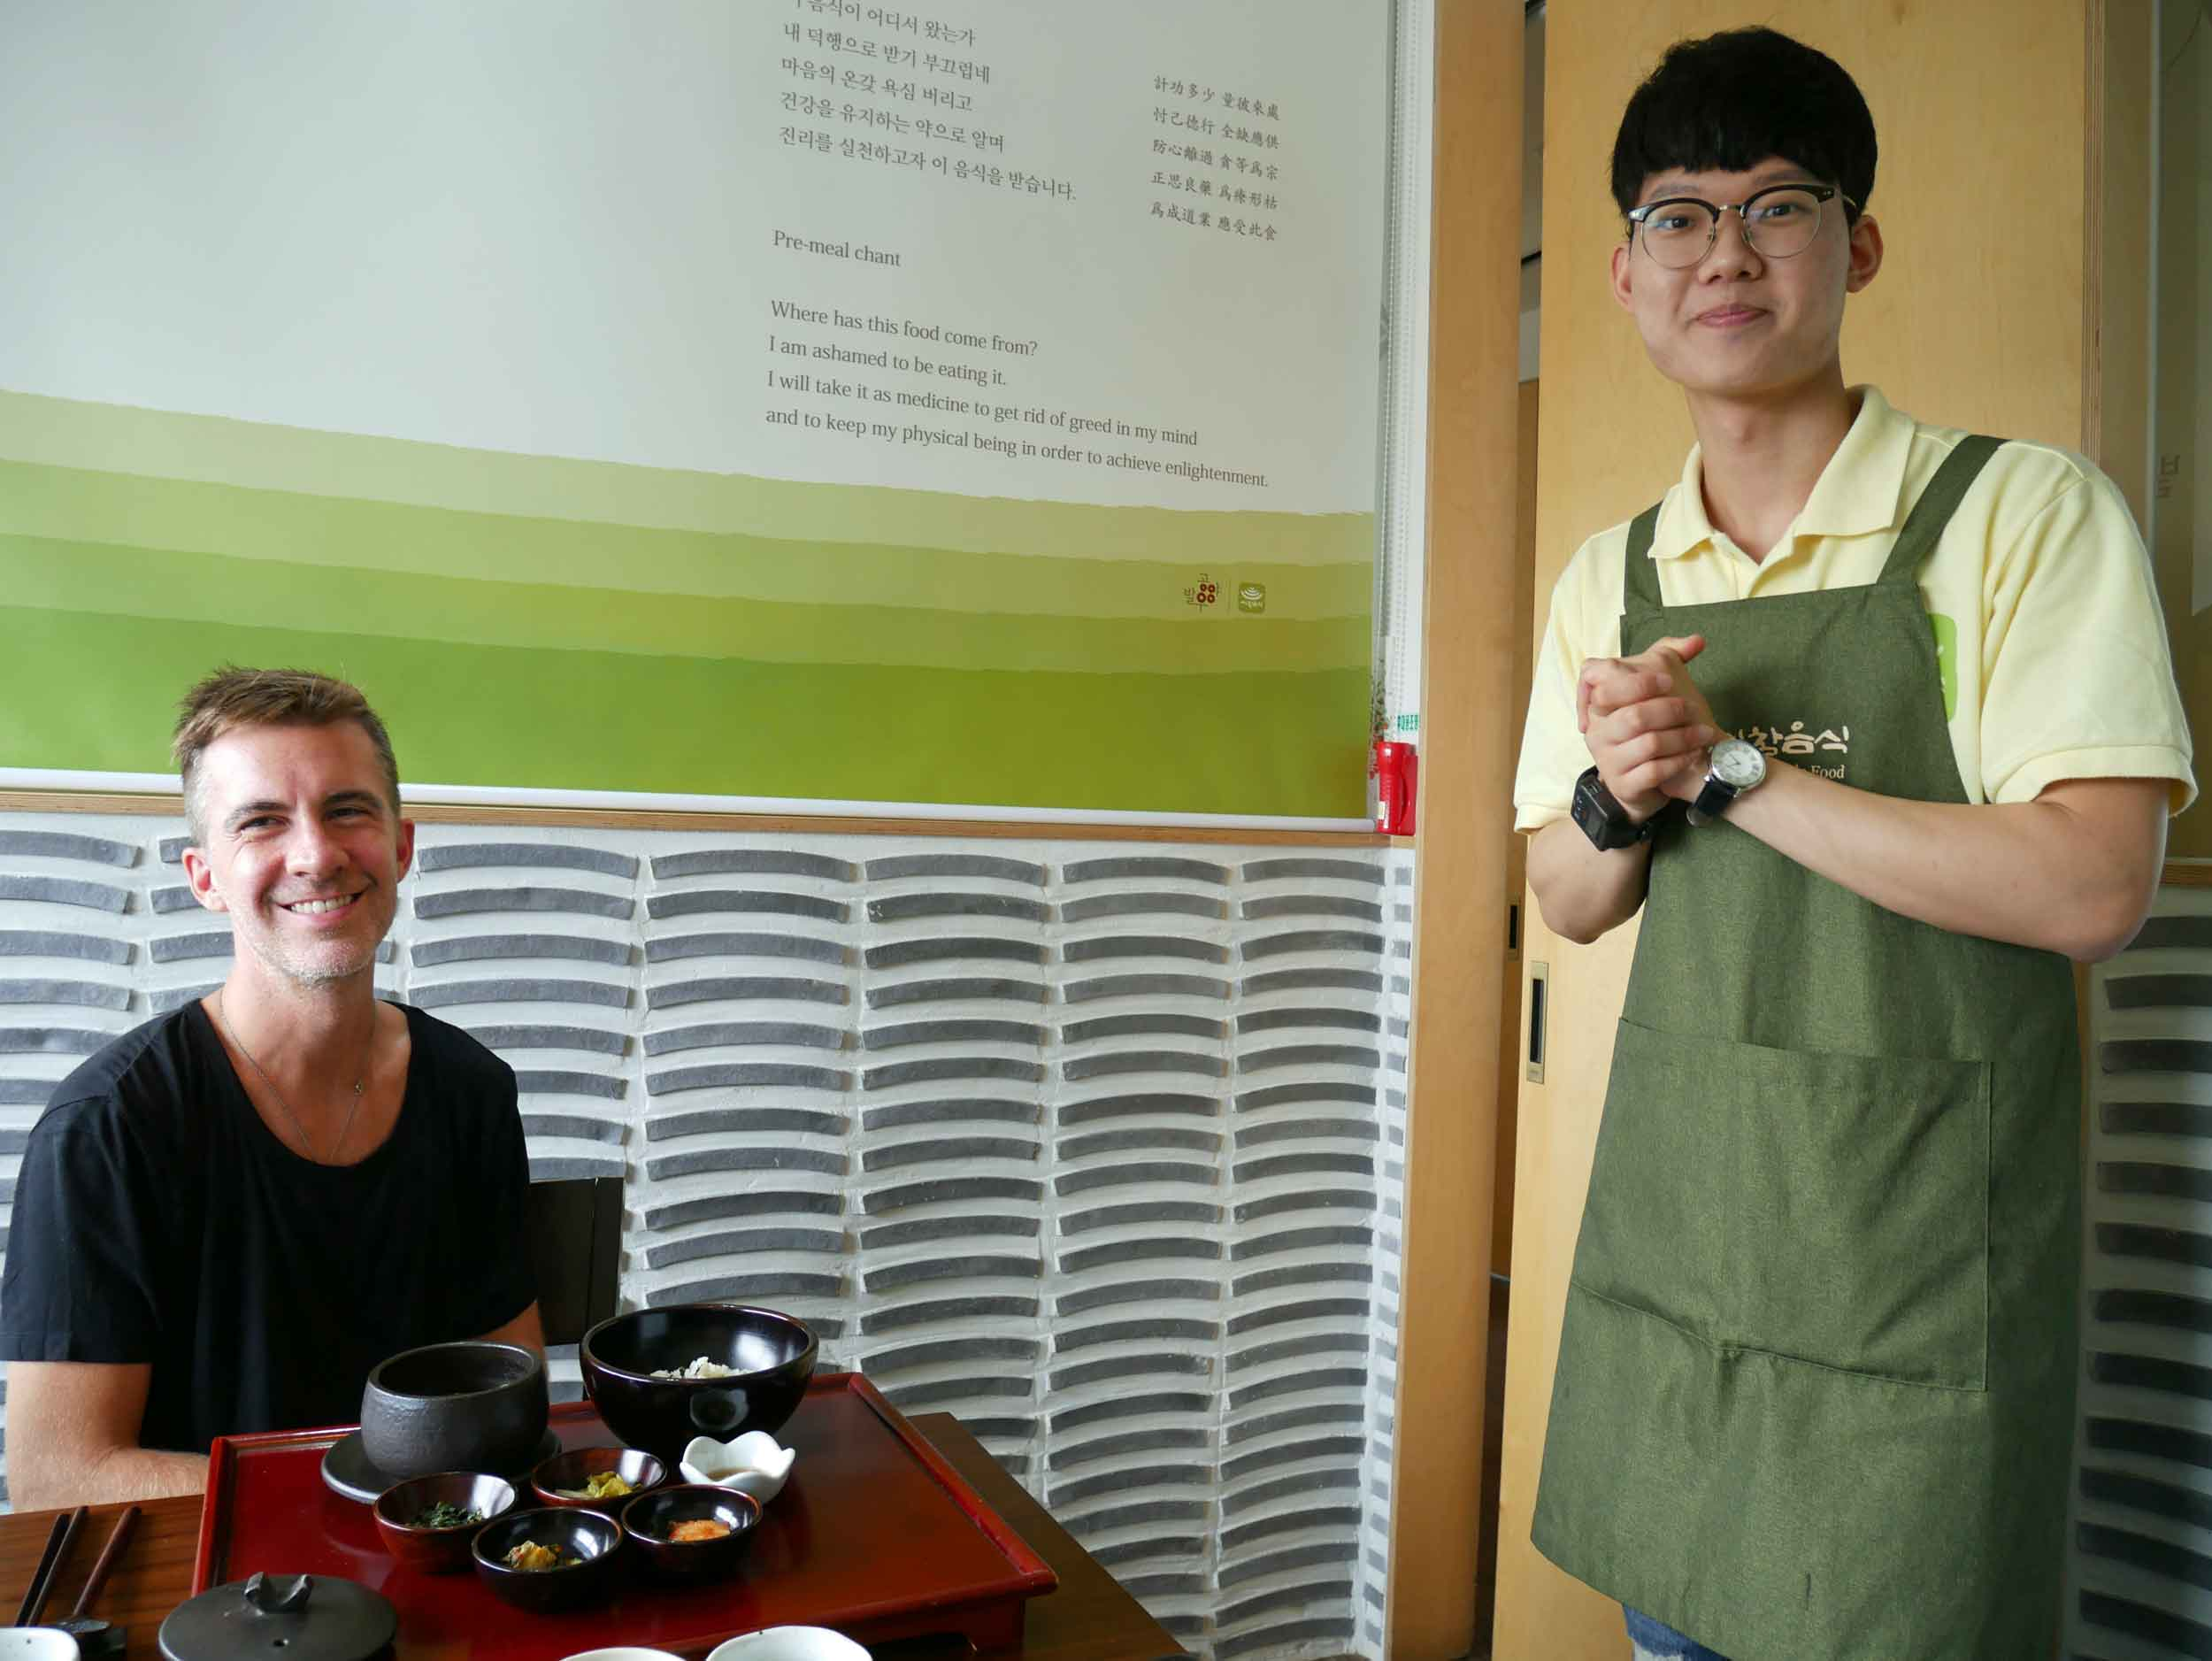 Our patient and kind waiter who walked us through each course and answered our burning temple food questions.